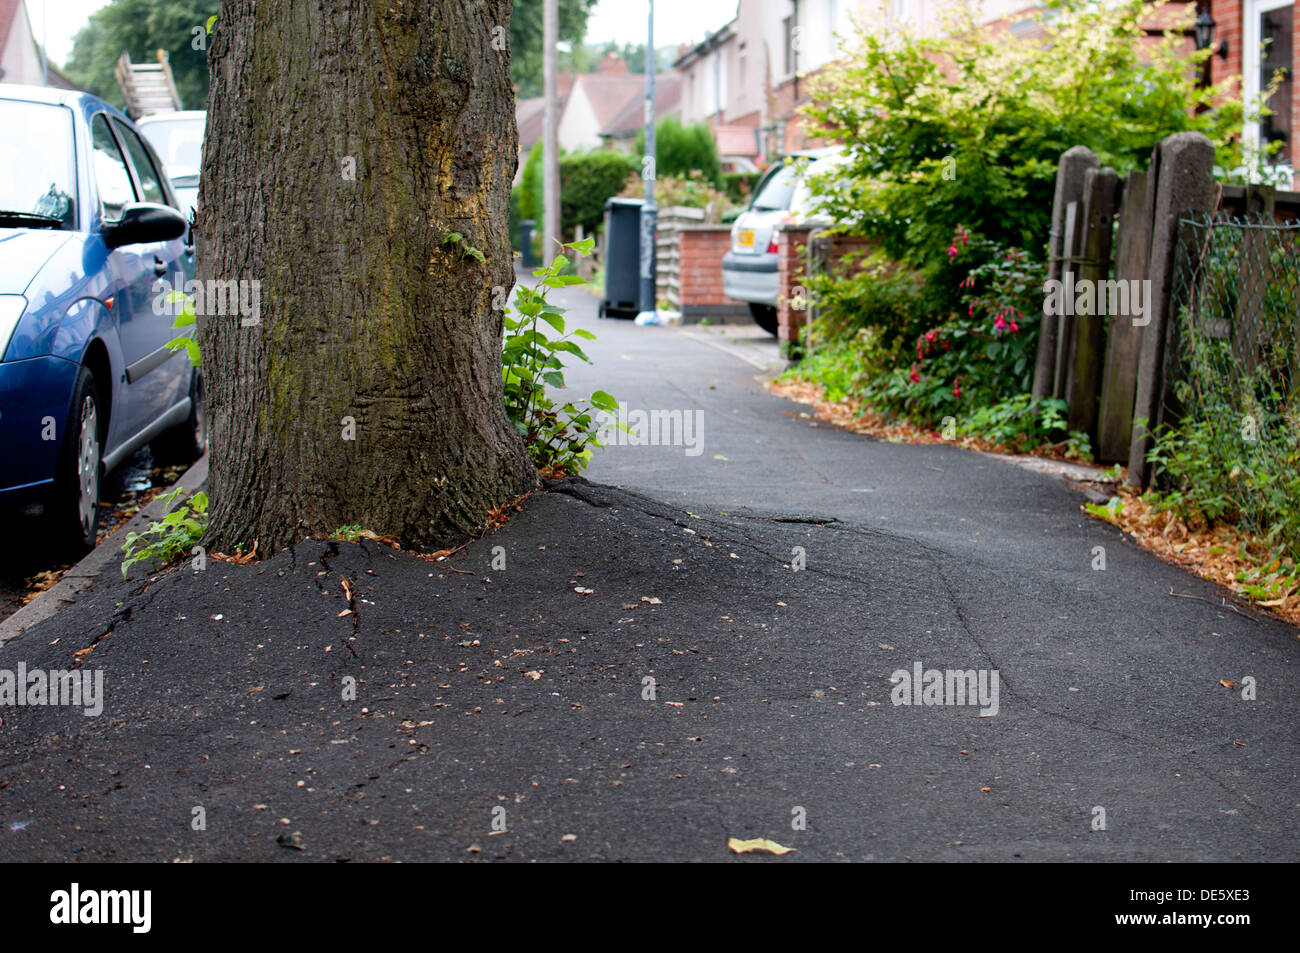 Lime tree roots forcing pavement tarmac up, Warwick, UK - Stock Image